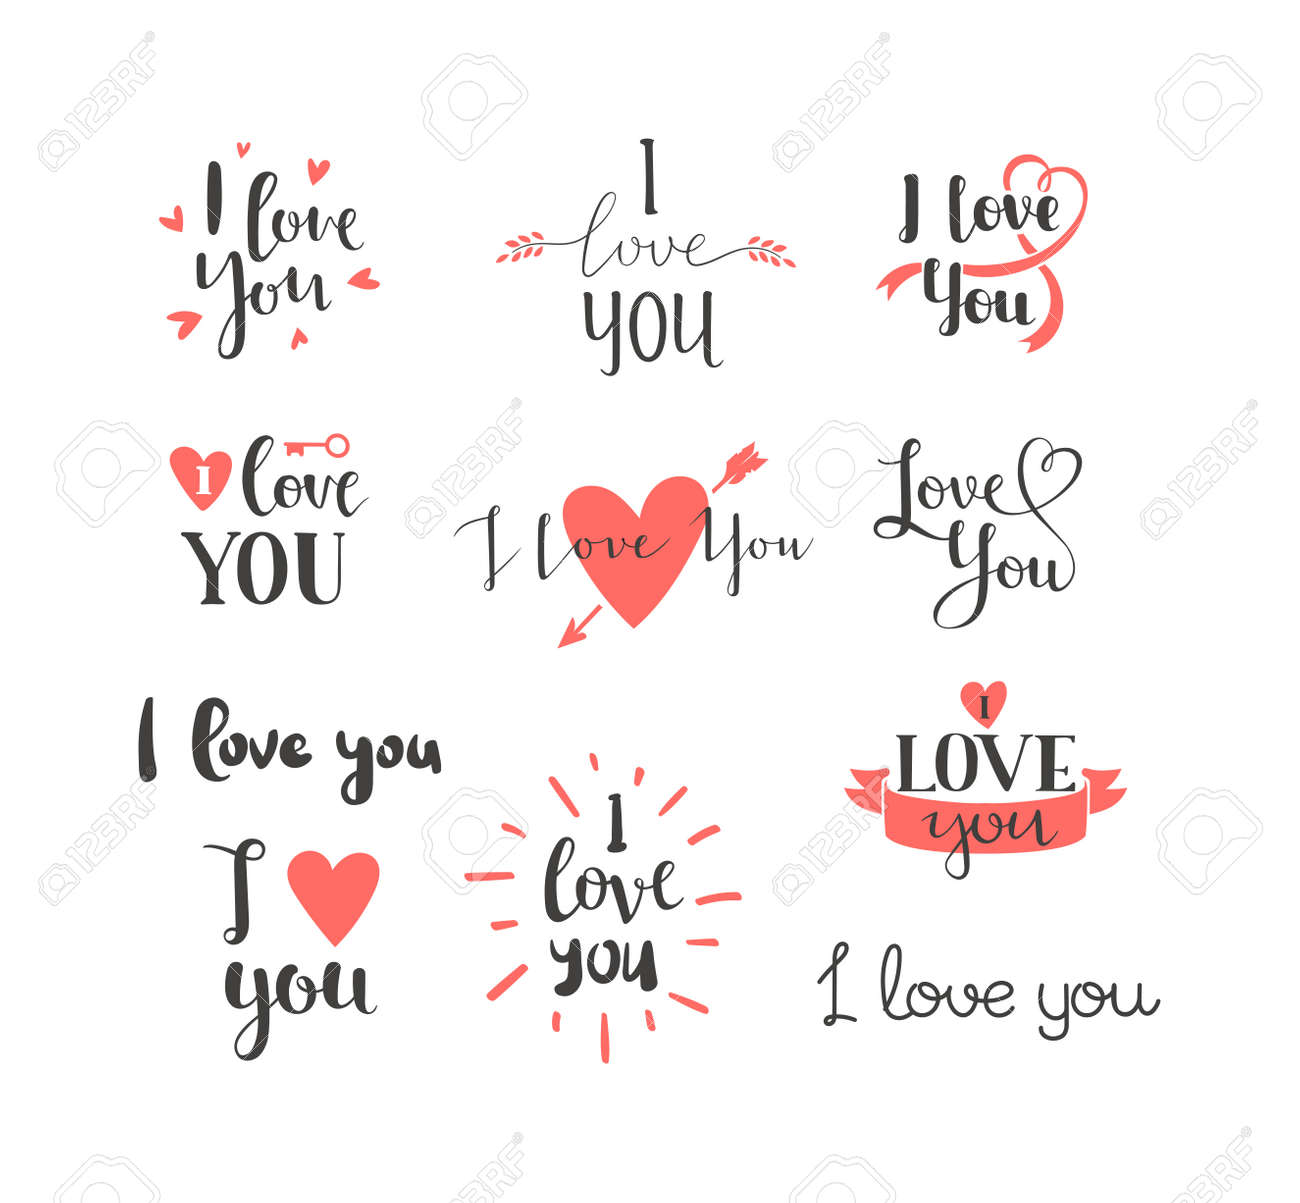 Free I Love You Quotes Vector I Love You Hand Drawn Lettering Textinspirational Quote